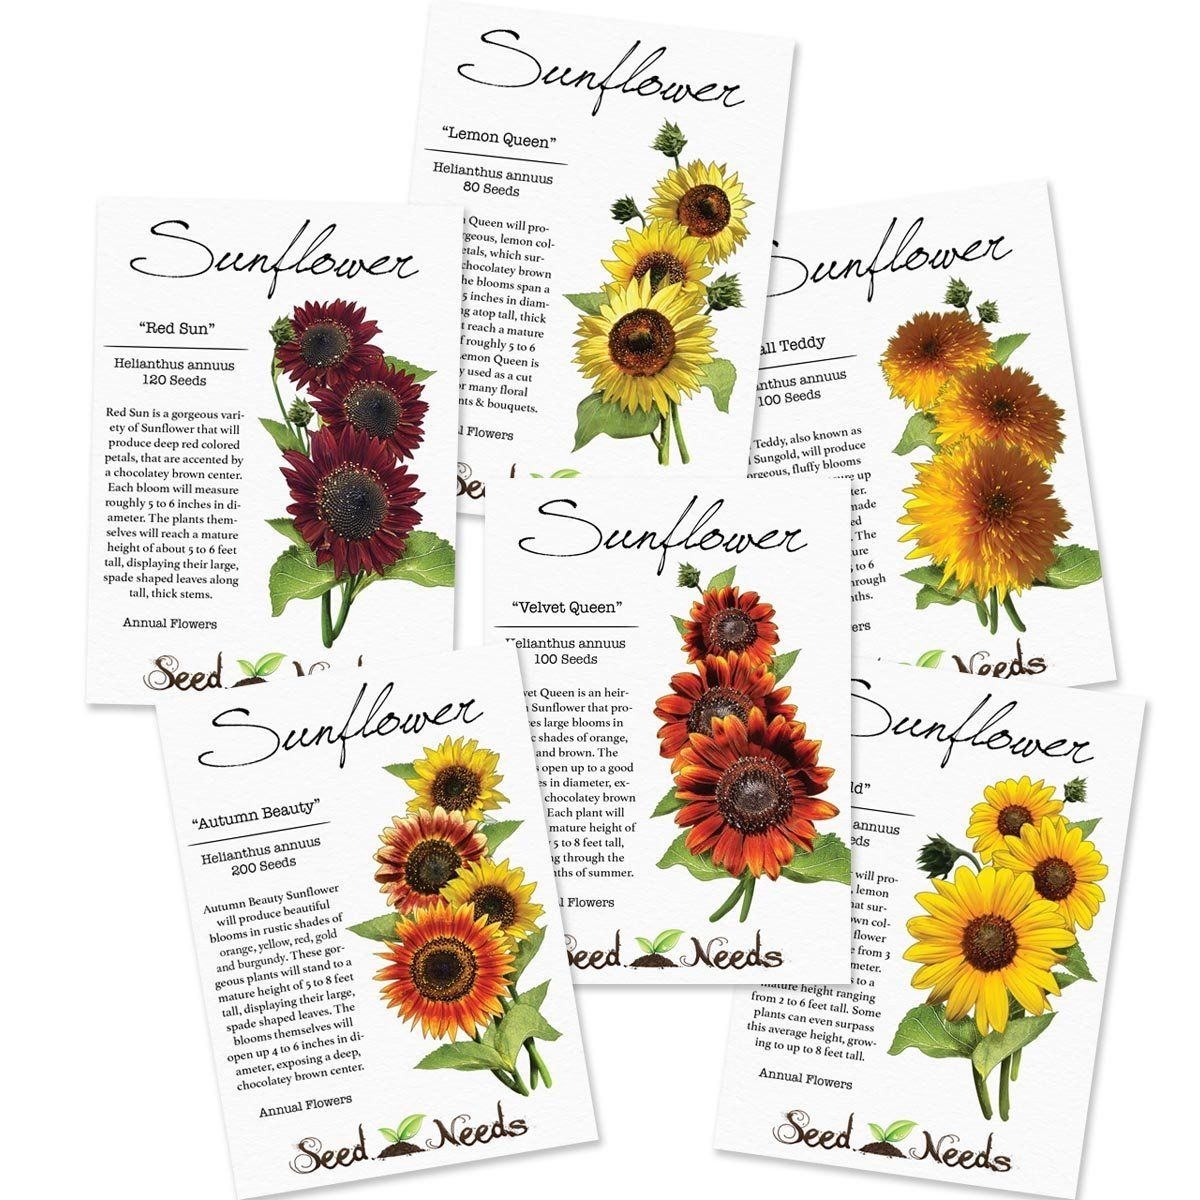 Crazy Sunflower Seed Collection Sunflower Sunflower Seeds Seed Packets